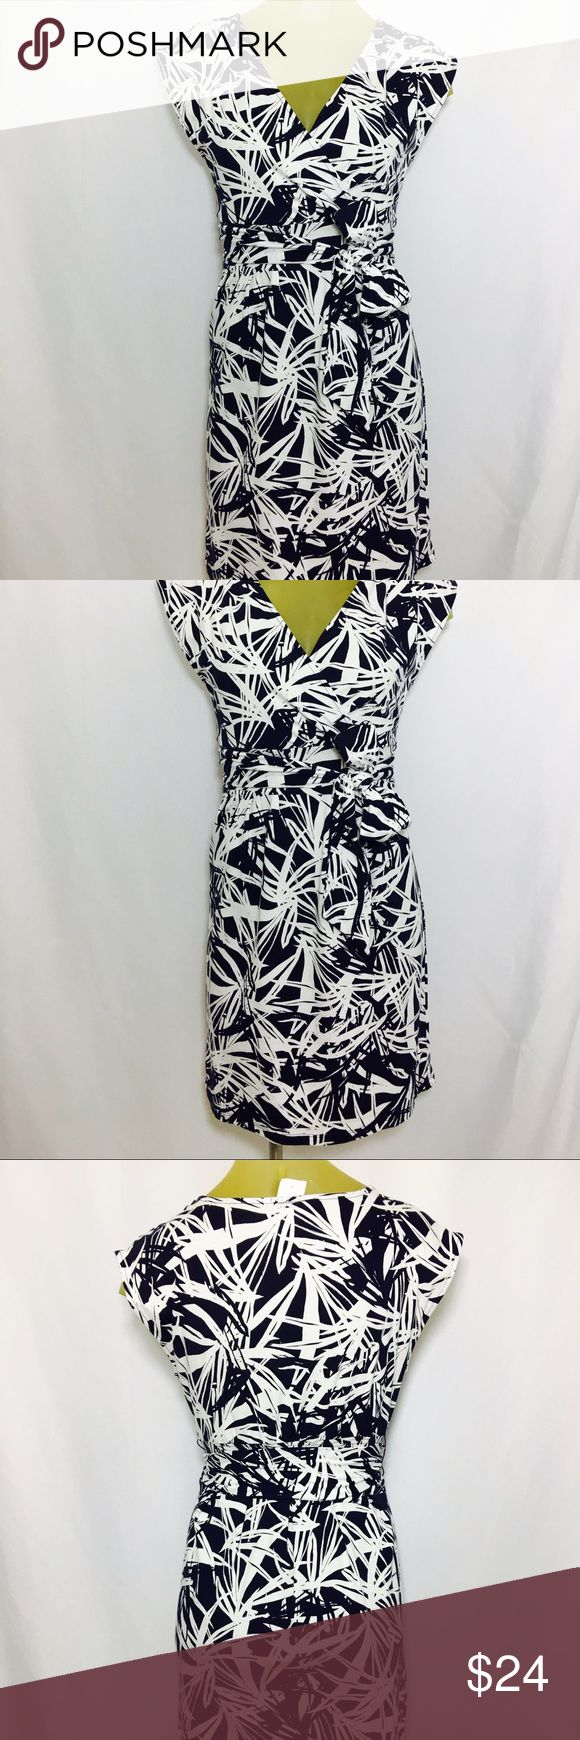 Ann Taylor Loft dress size Small new With Tags Ann Taylor Loft dress. Size Small. White with navy print. 95% cotton 5% spandex. 21 inches from left to right armpit. 36 inches from top of the shoulder to the bottom hem. Ann Taylor Loft Dresses Midi